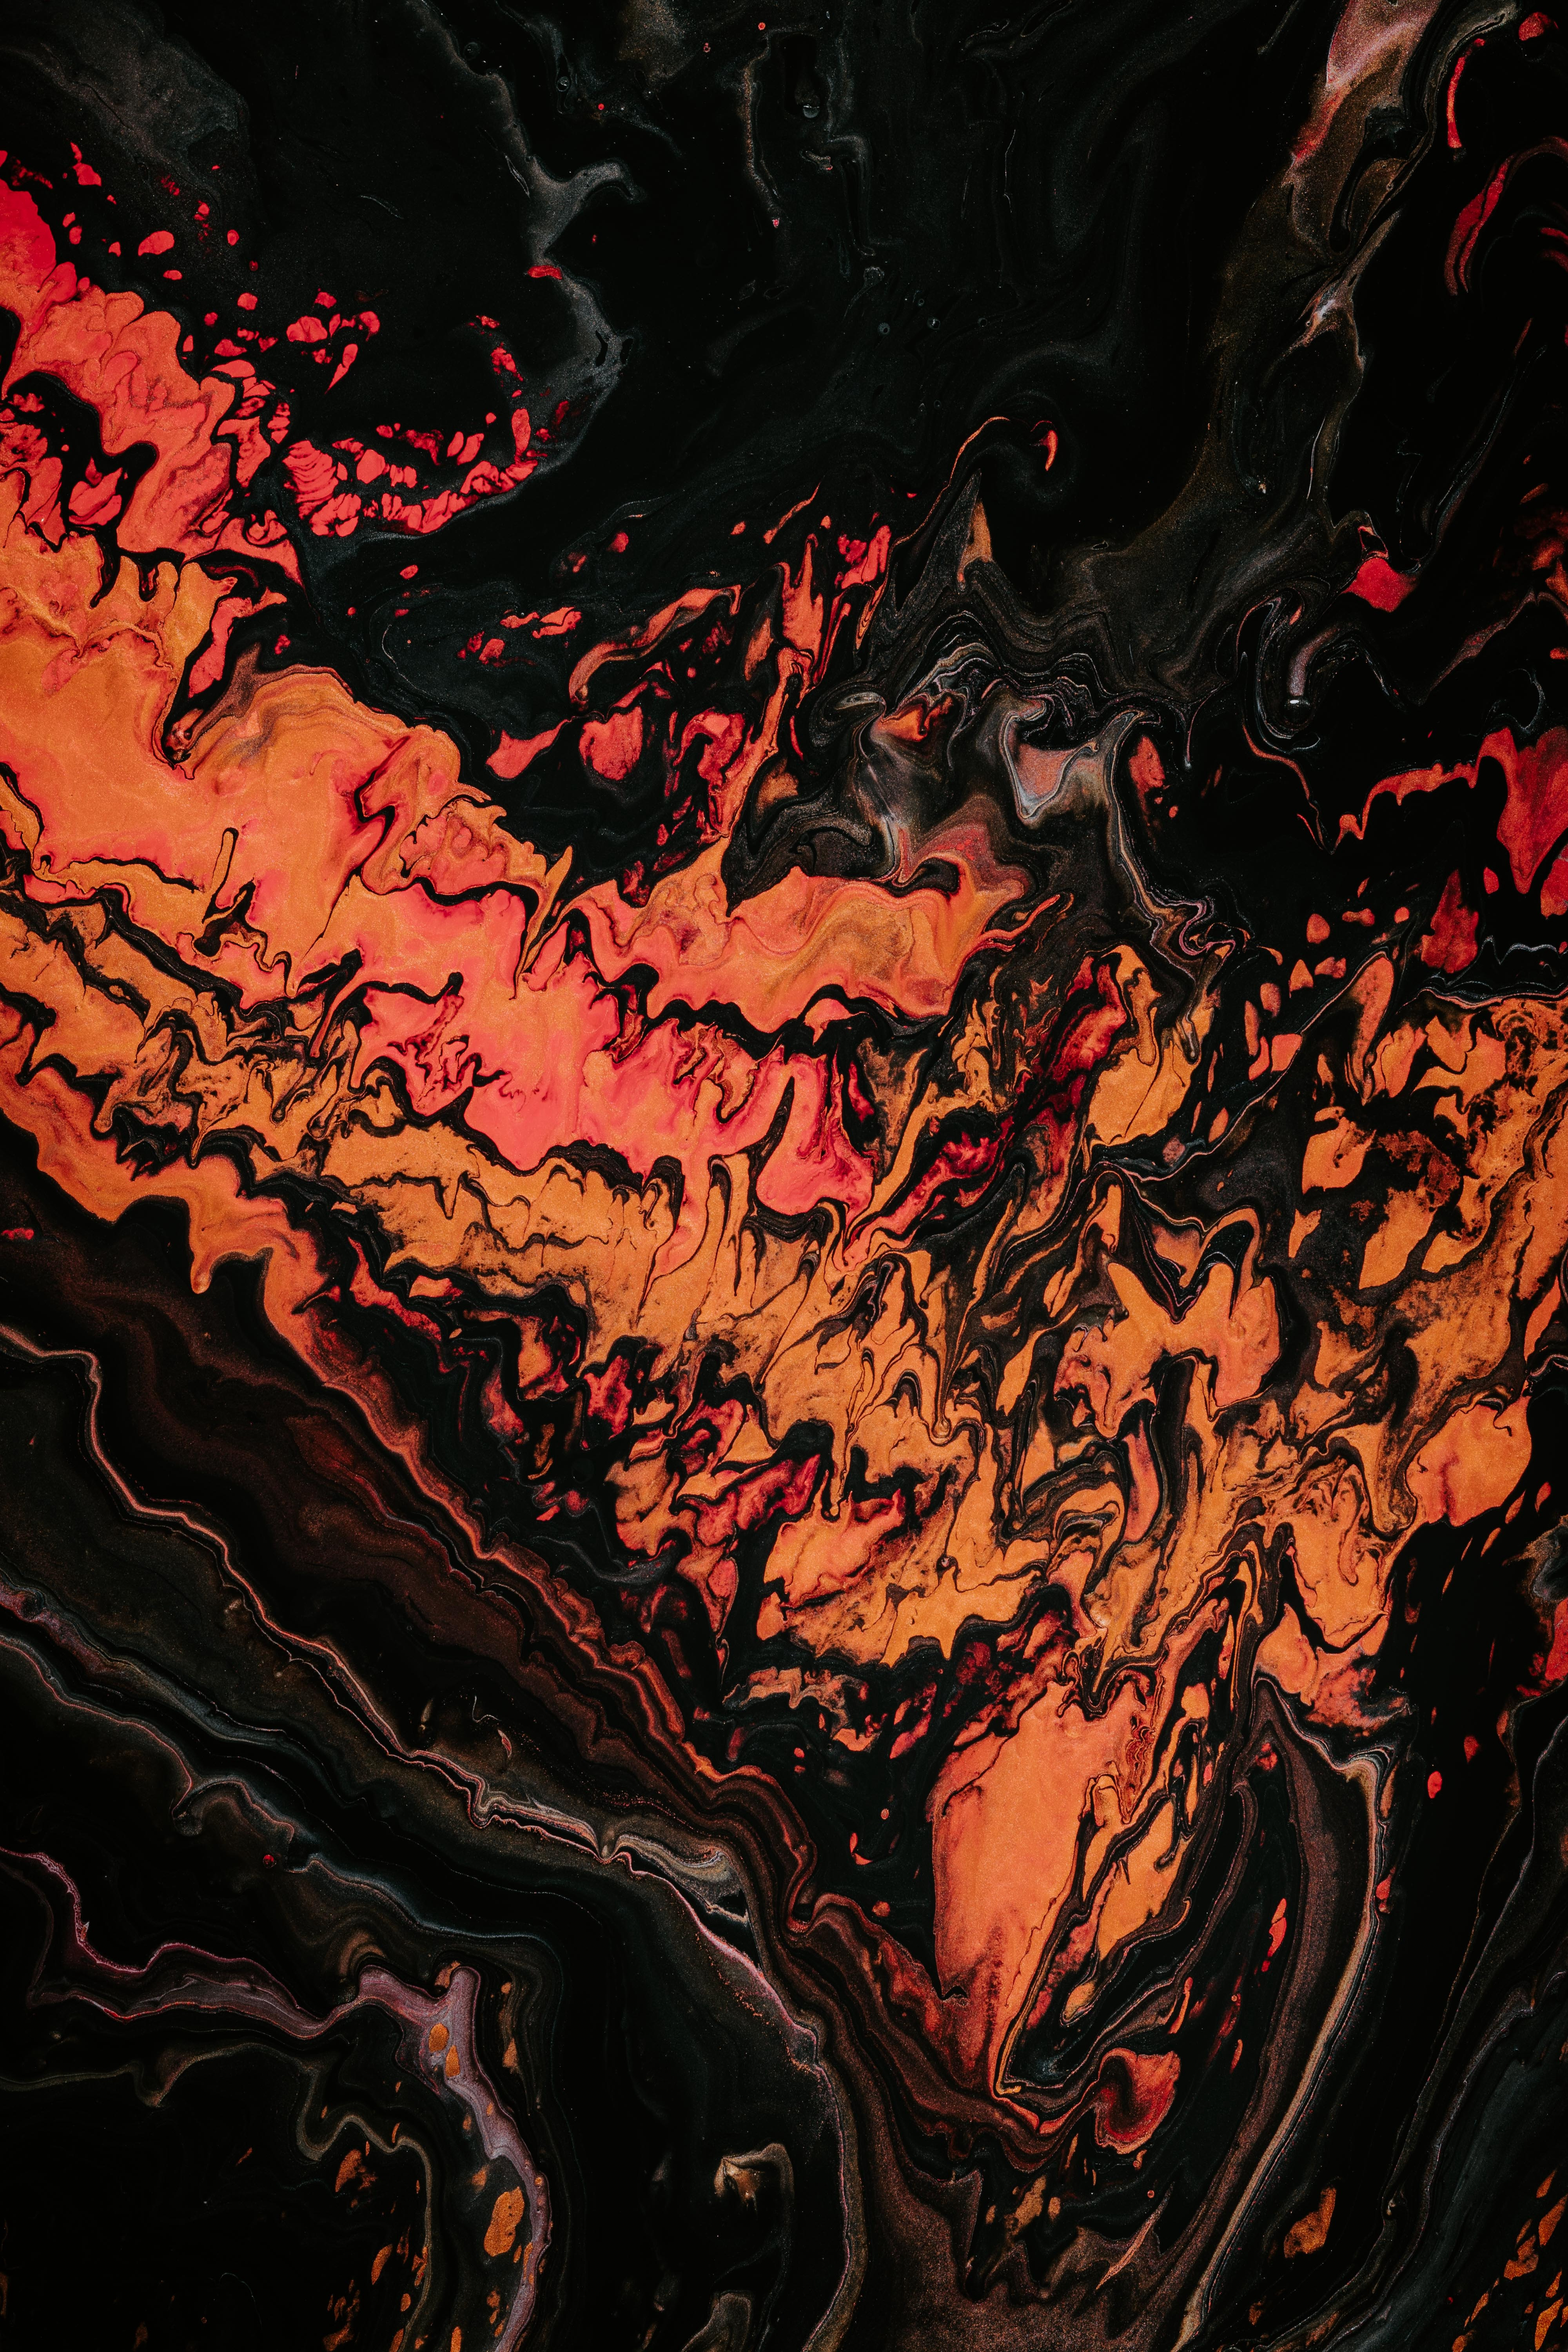 75475 download wallpaper Abstract, Divorces, Multicolored, Motley, Paint, Liquid screensavers and pictures for free